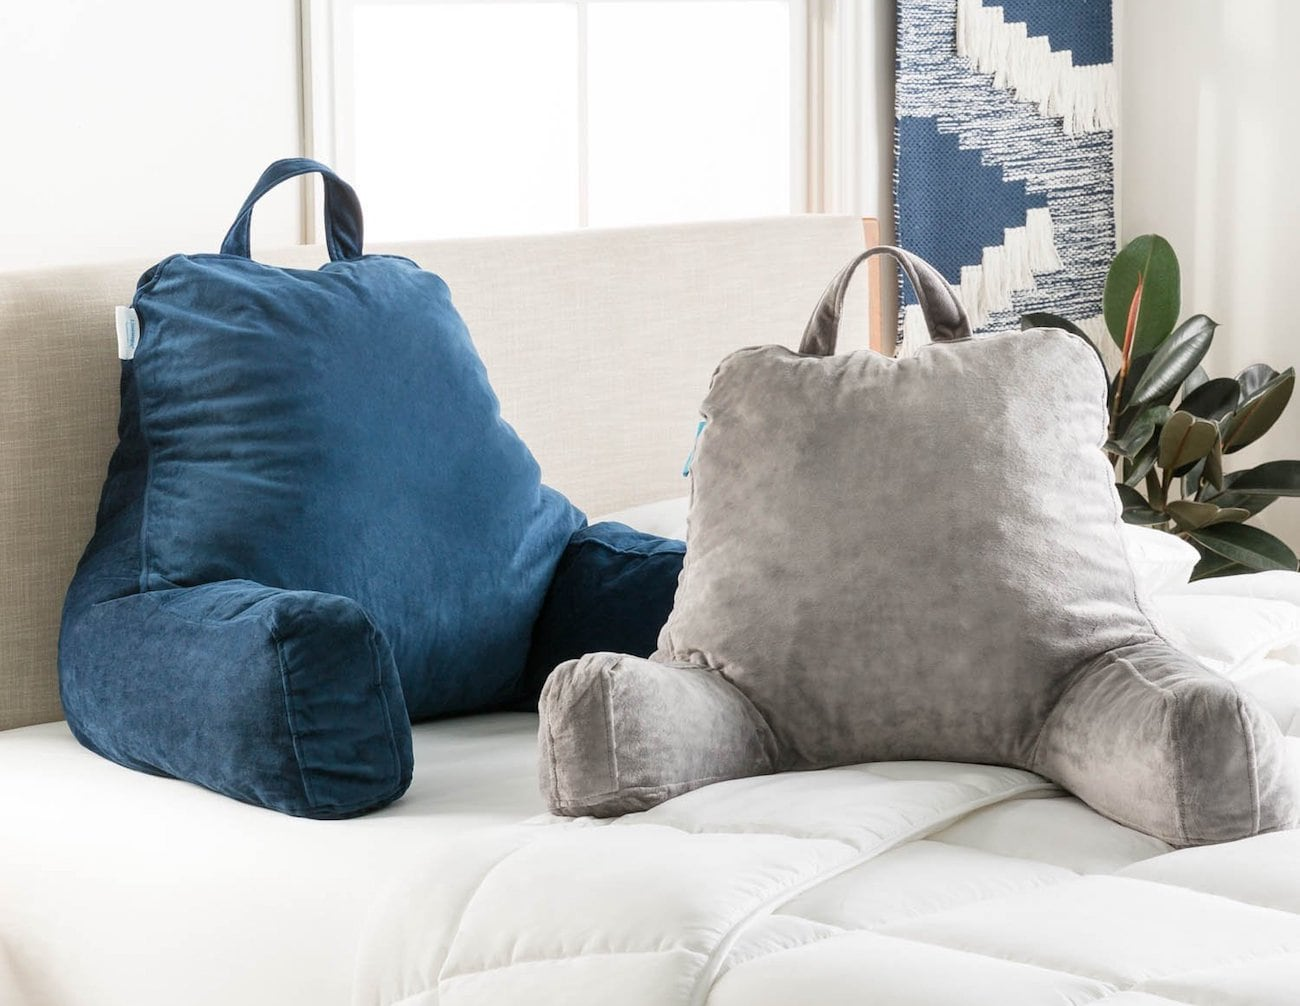 blue and gray Reading pillows